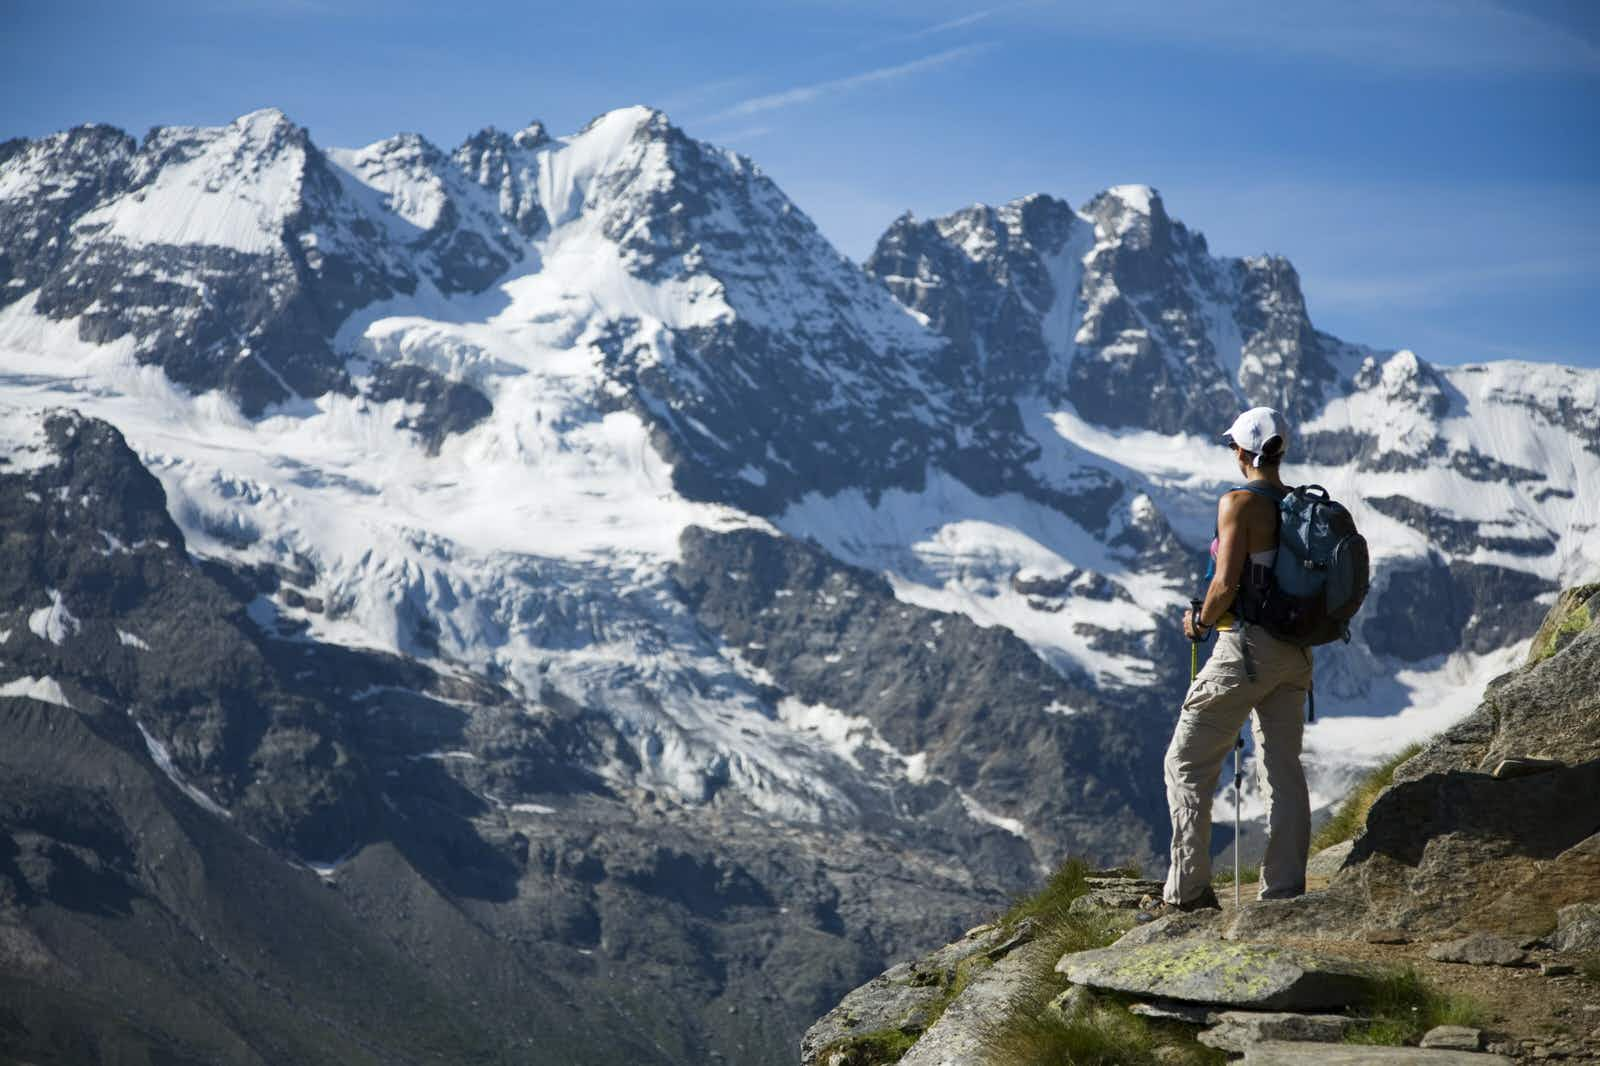 Discovering the Dolomite mountains during autumn season during road trip in the Italian Alps. Tre Cime di Lavaredo.